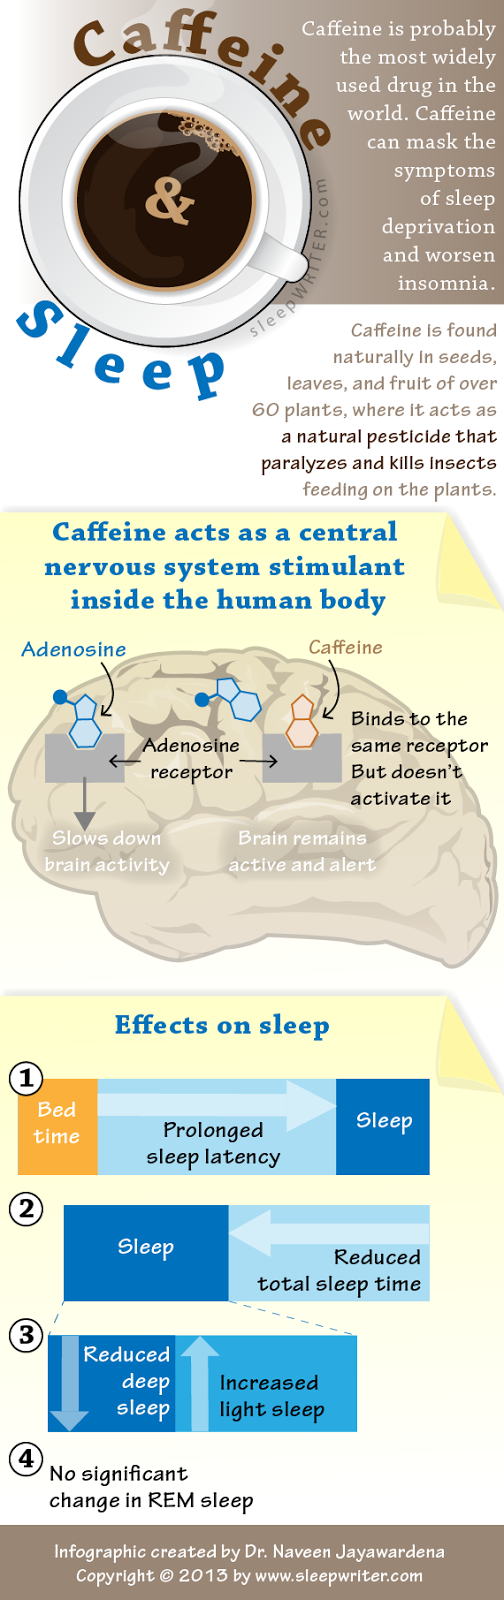 Infographic about the effects of caffeine on sleep